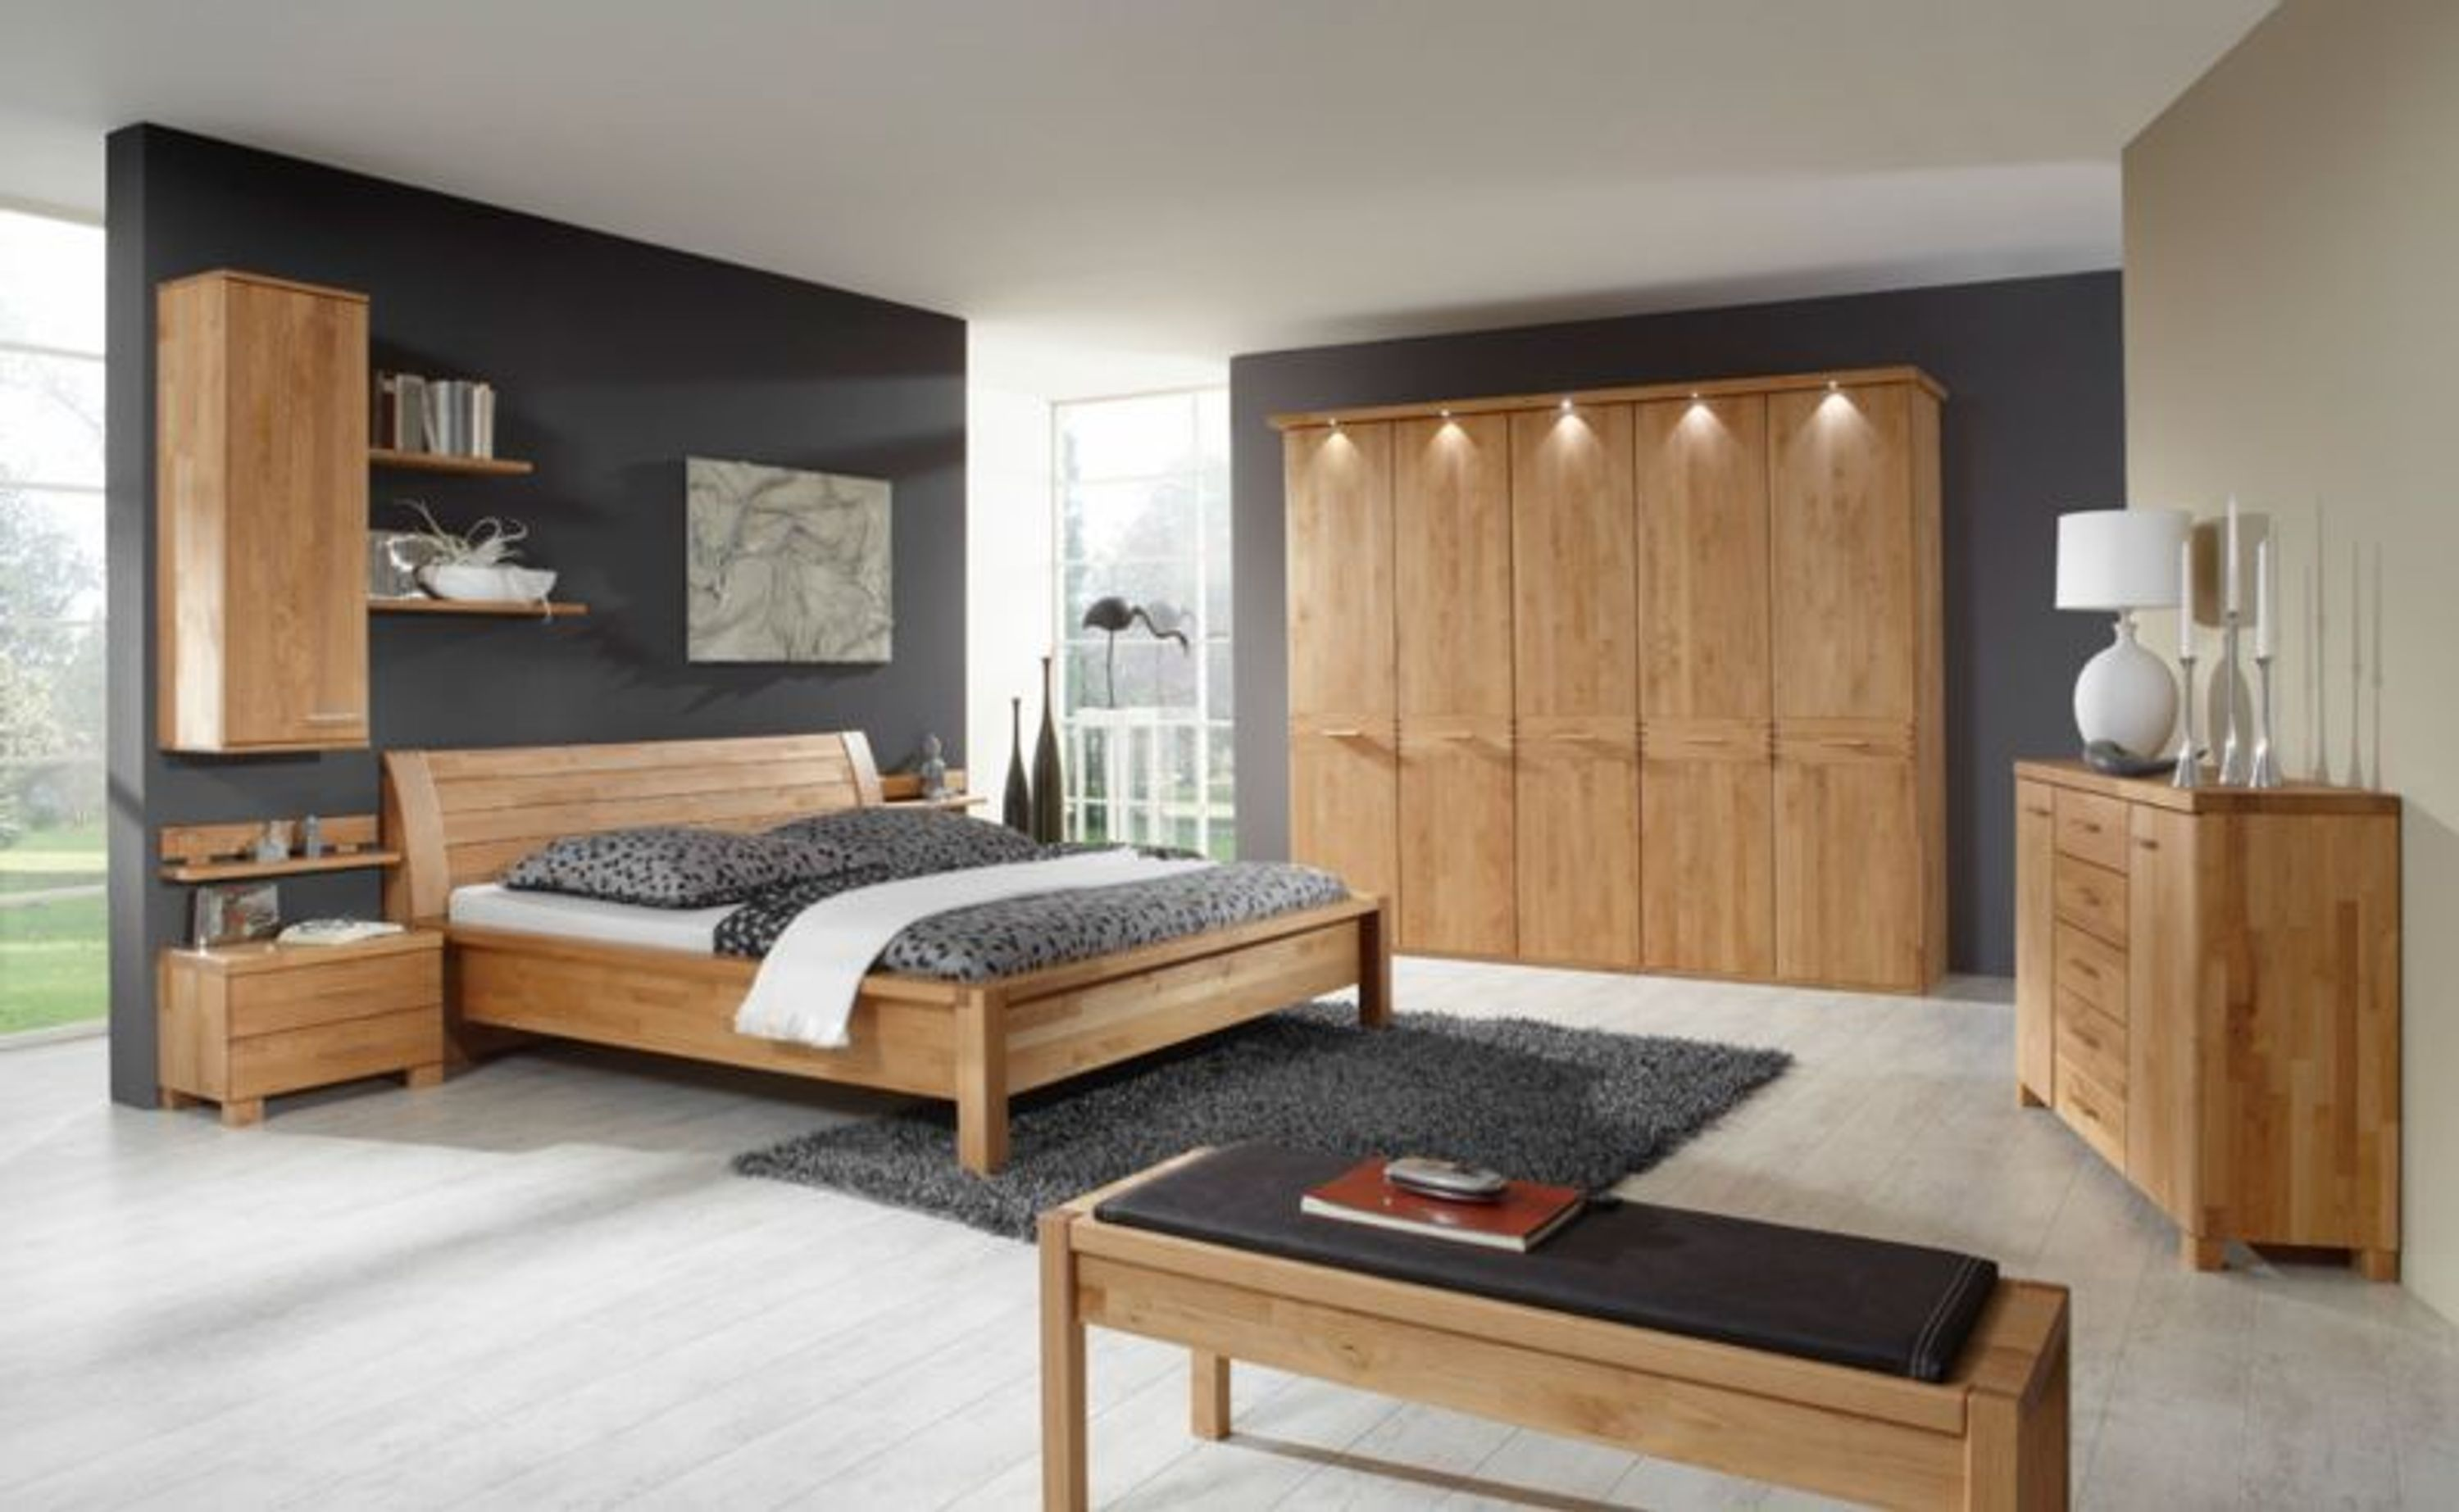 gent schlafzimmer in erle massiv 200x200 kaufen bei. Black Bedroom Furniture Sets. Home Design Ideas